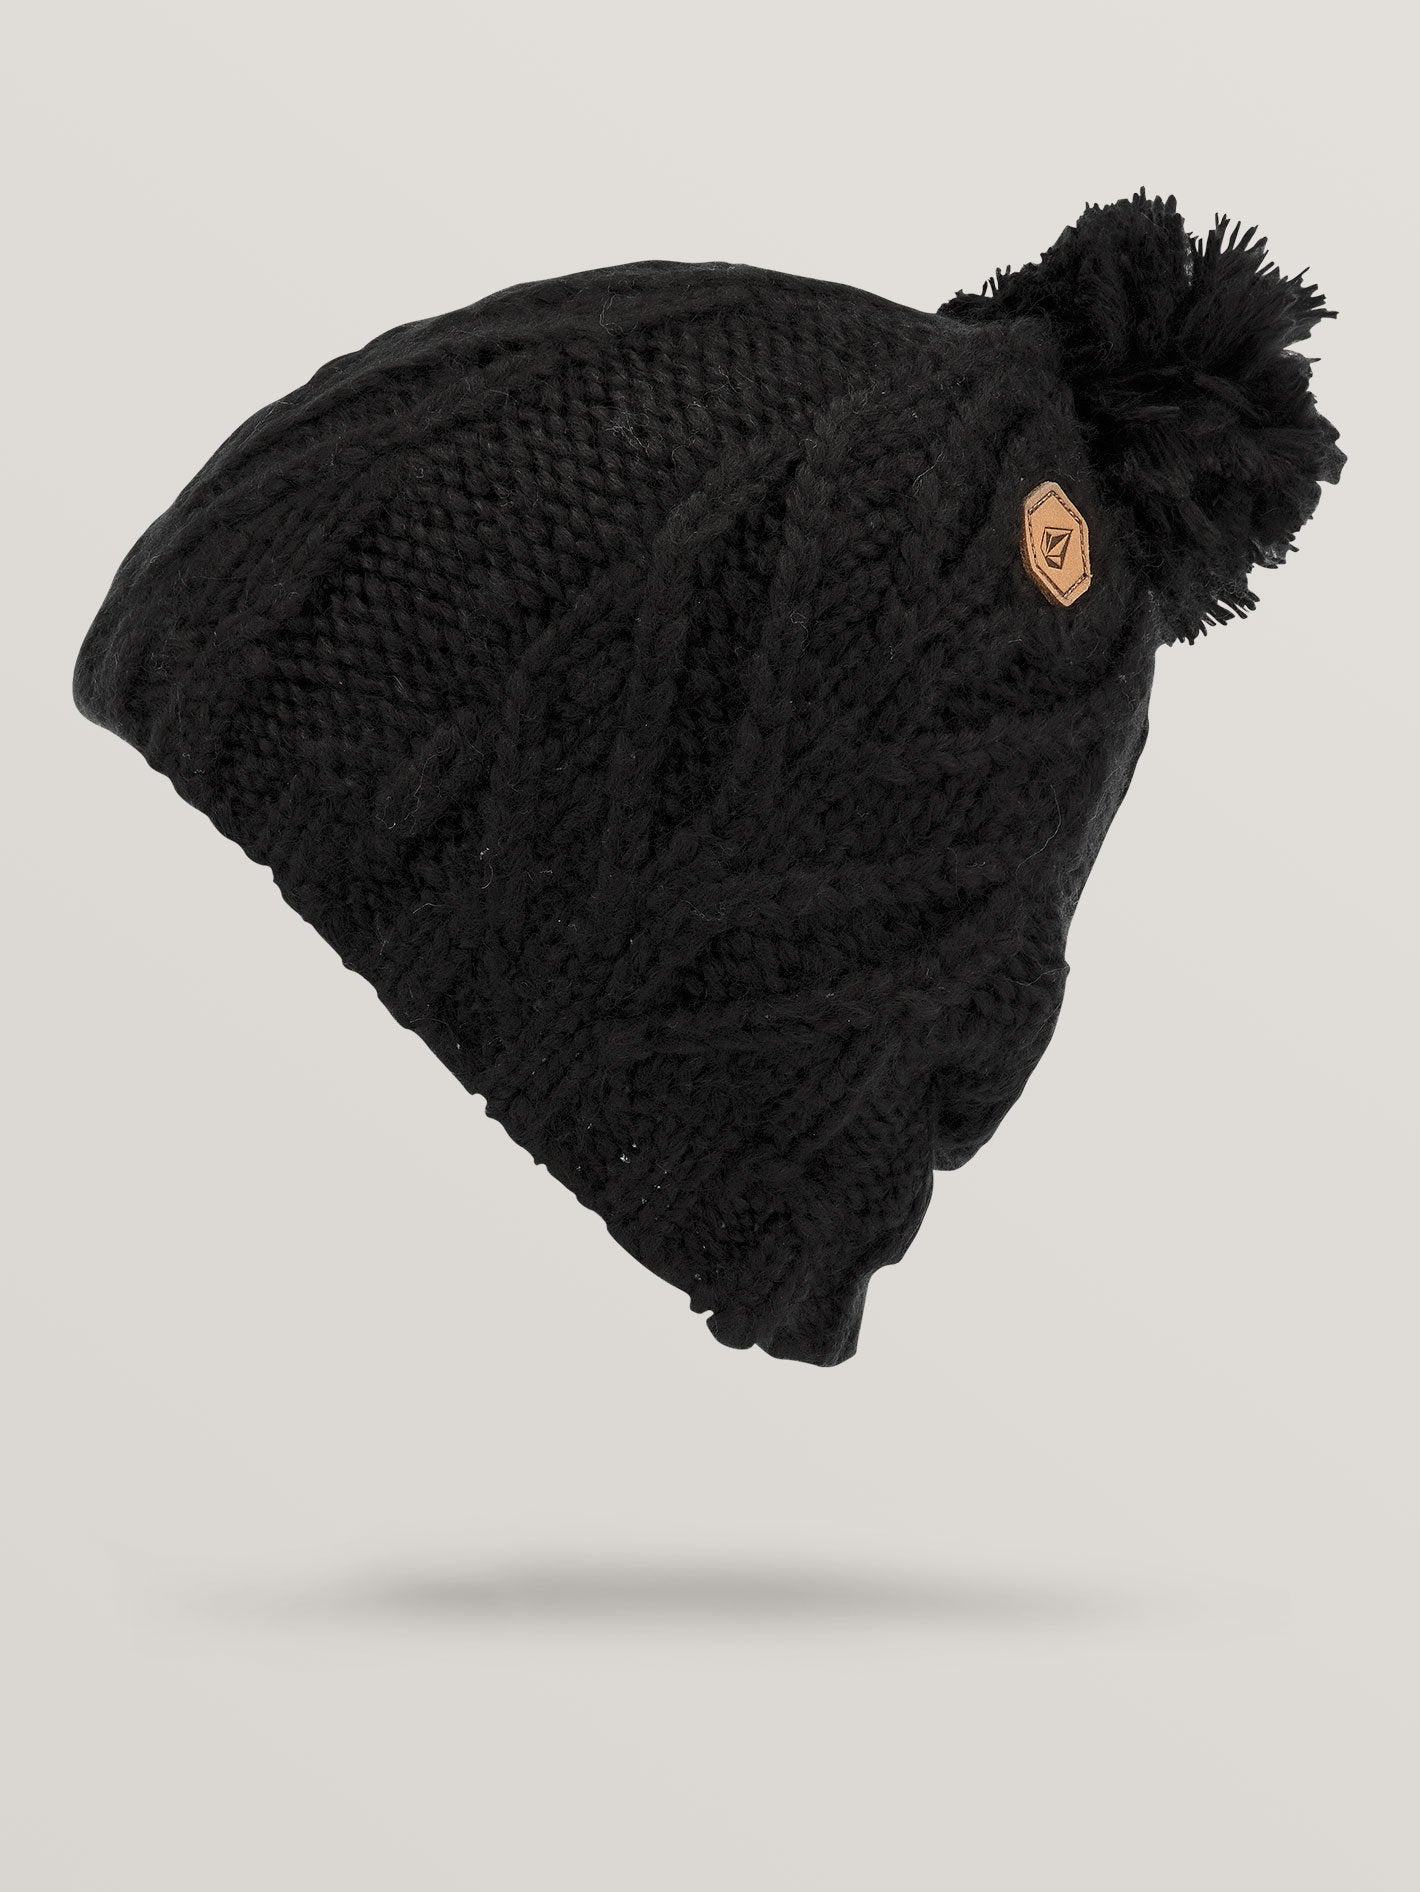 Volcom Women's Leaf Beanies - 88 Gear